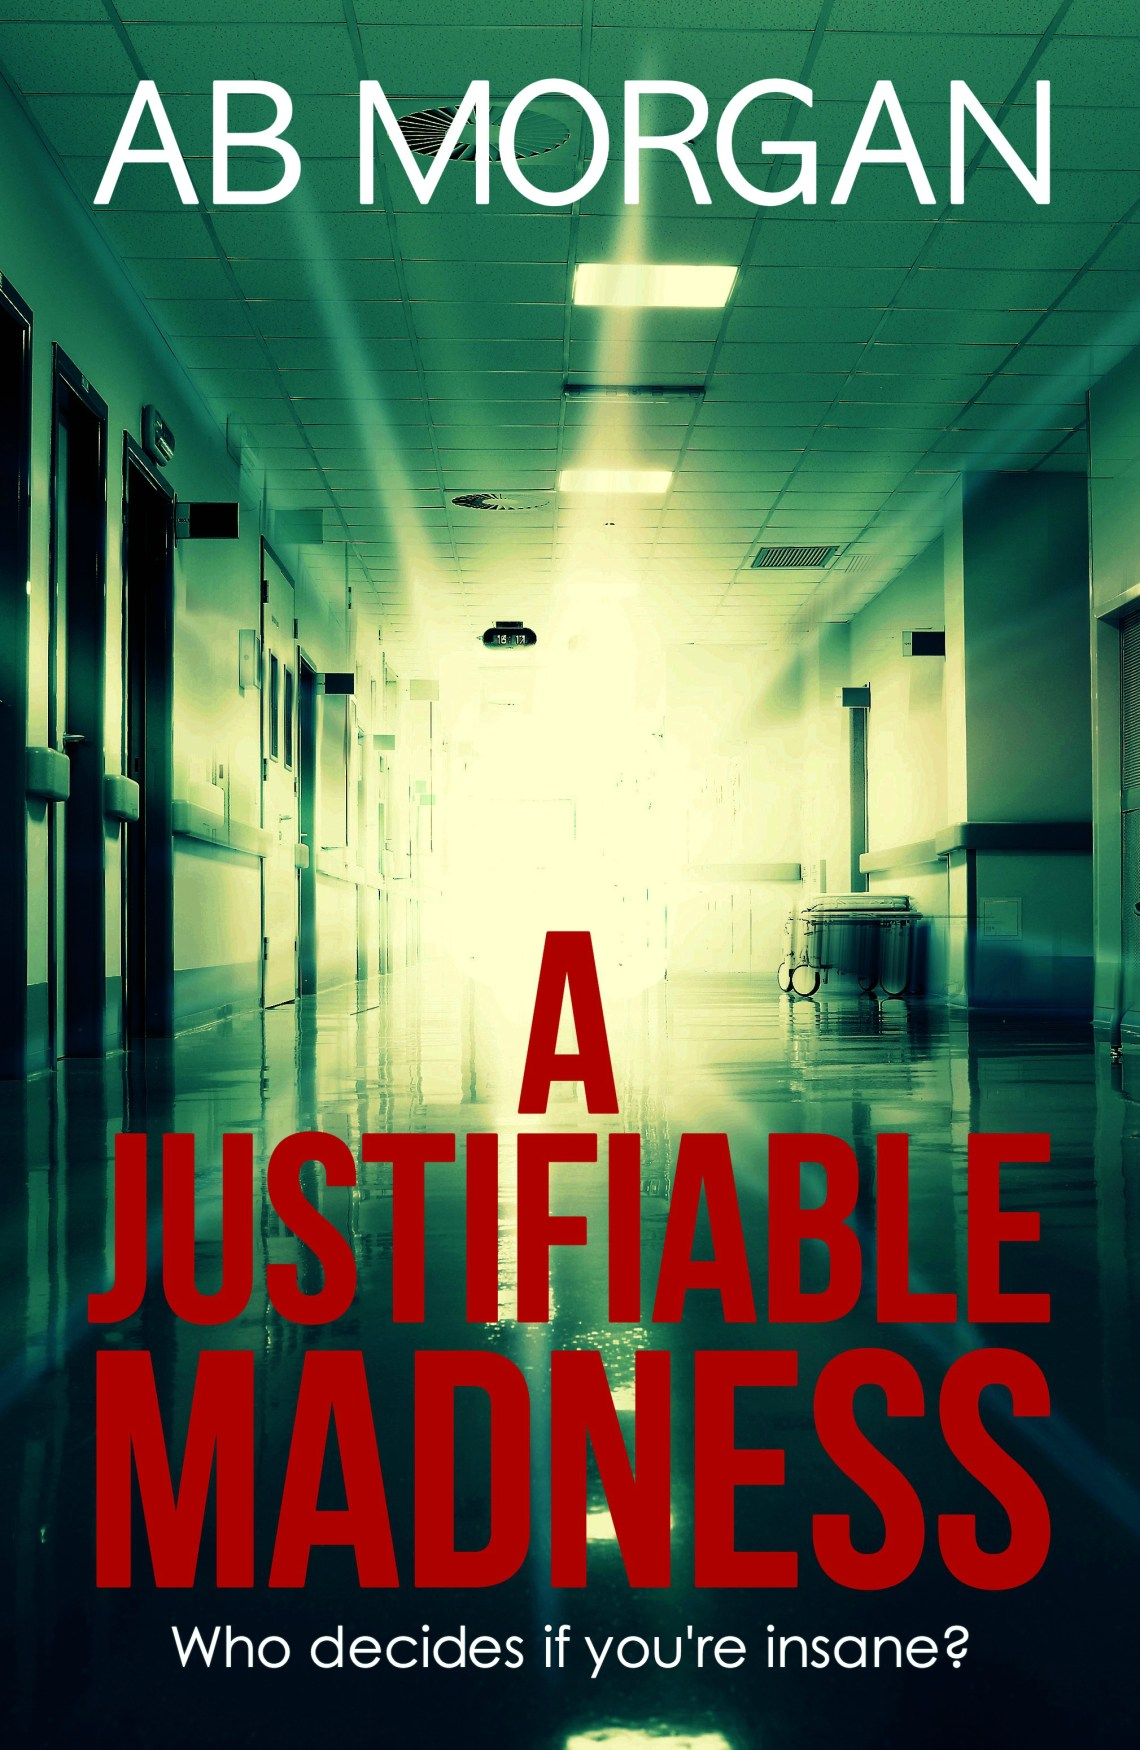 A Justifiable Madness - AB Morgan - Book Cover